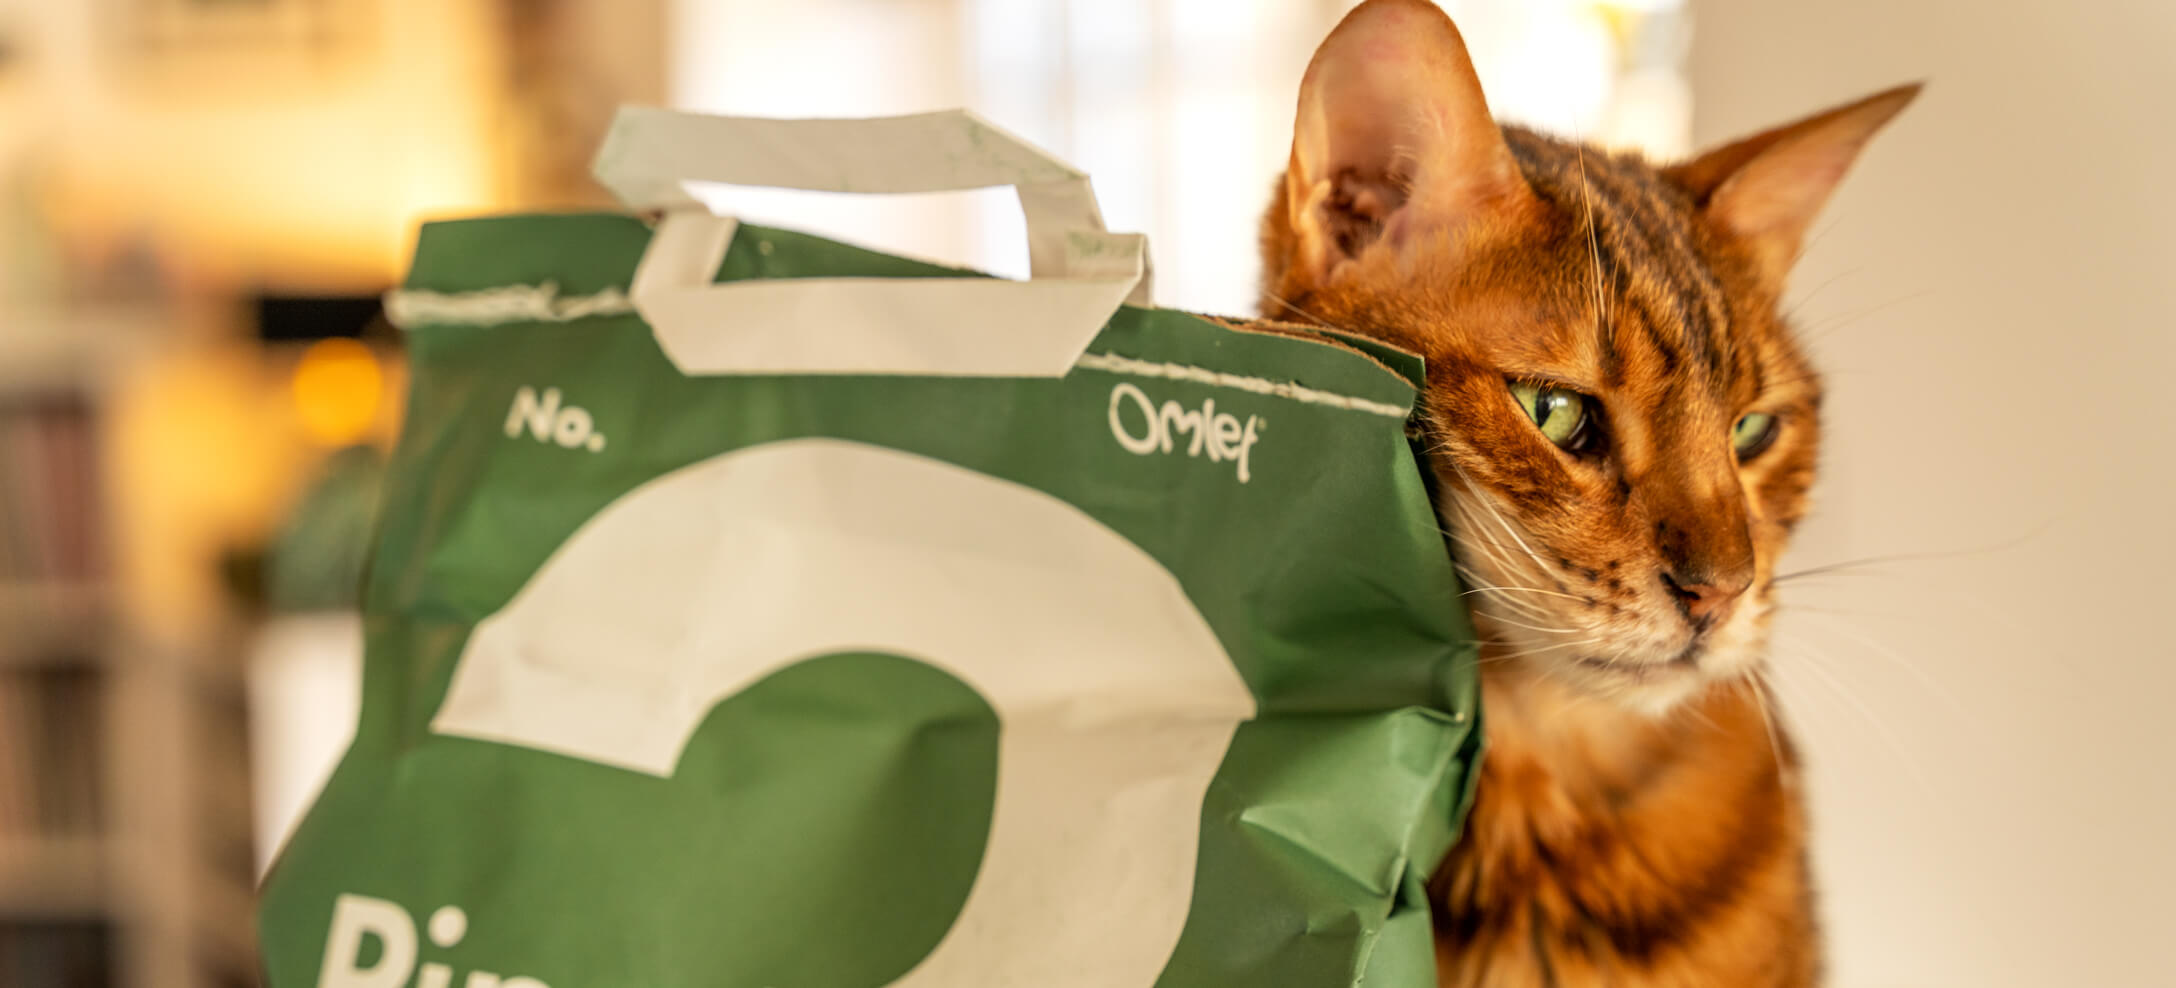 A Bengal cat sits by a green bag of cat litter